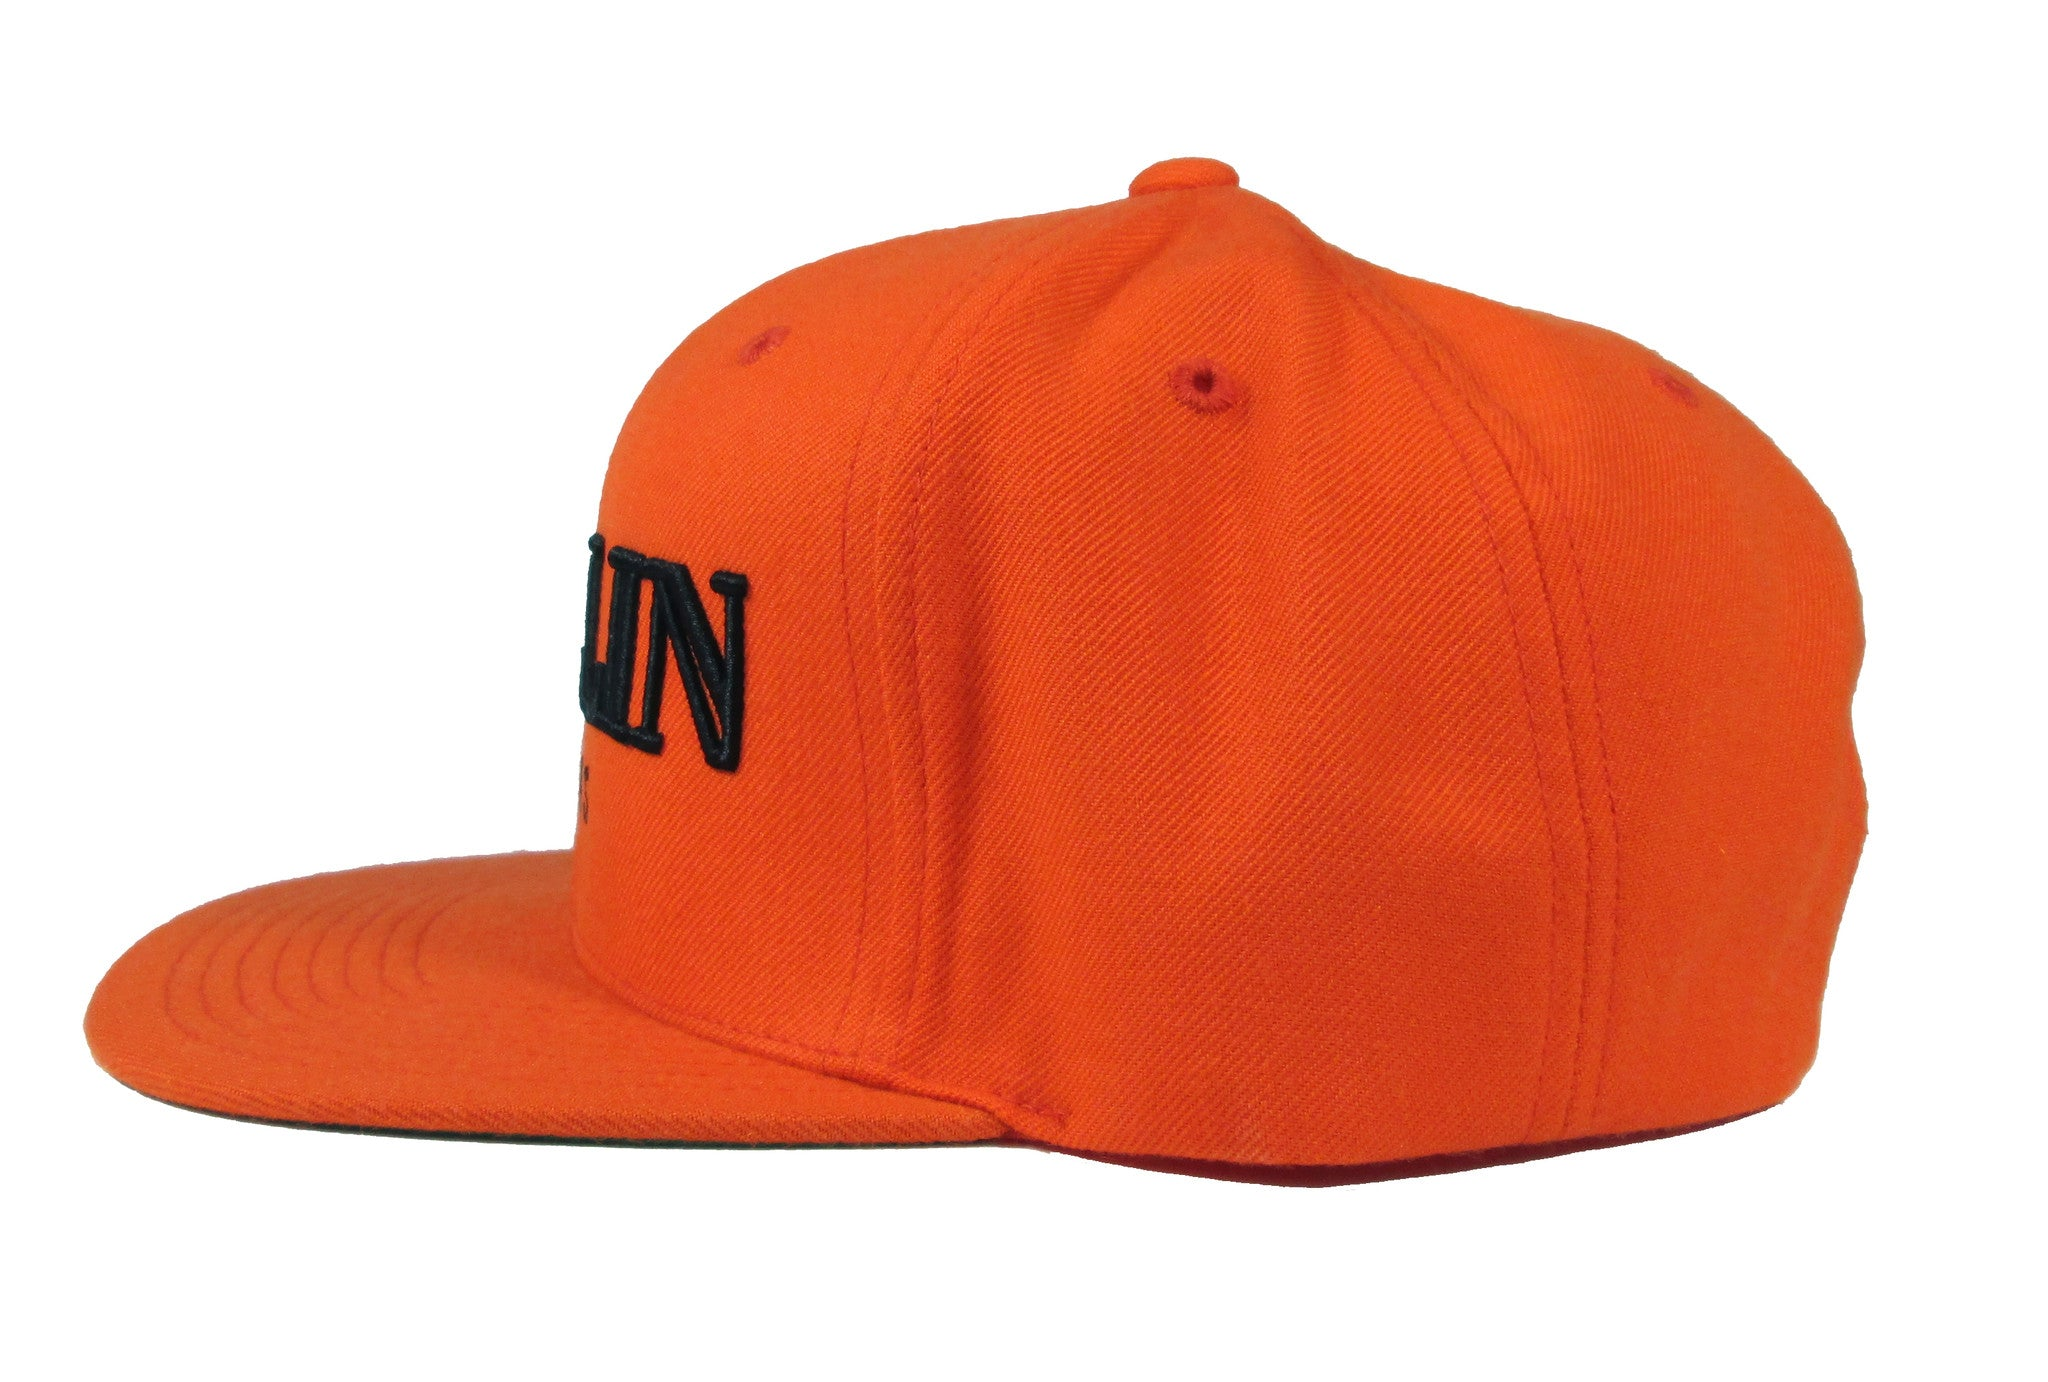 Alex & Chloe Orange Snap Back Side View